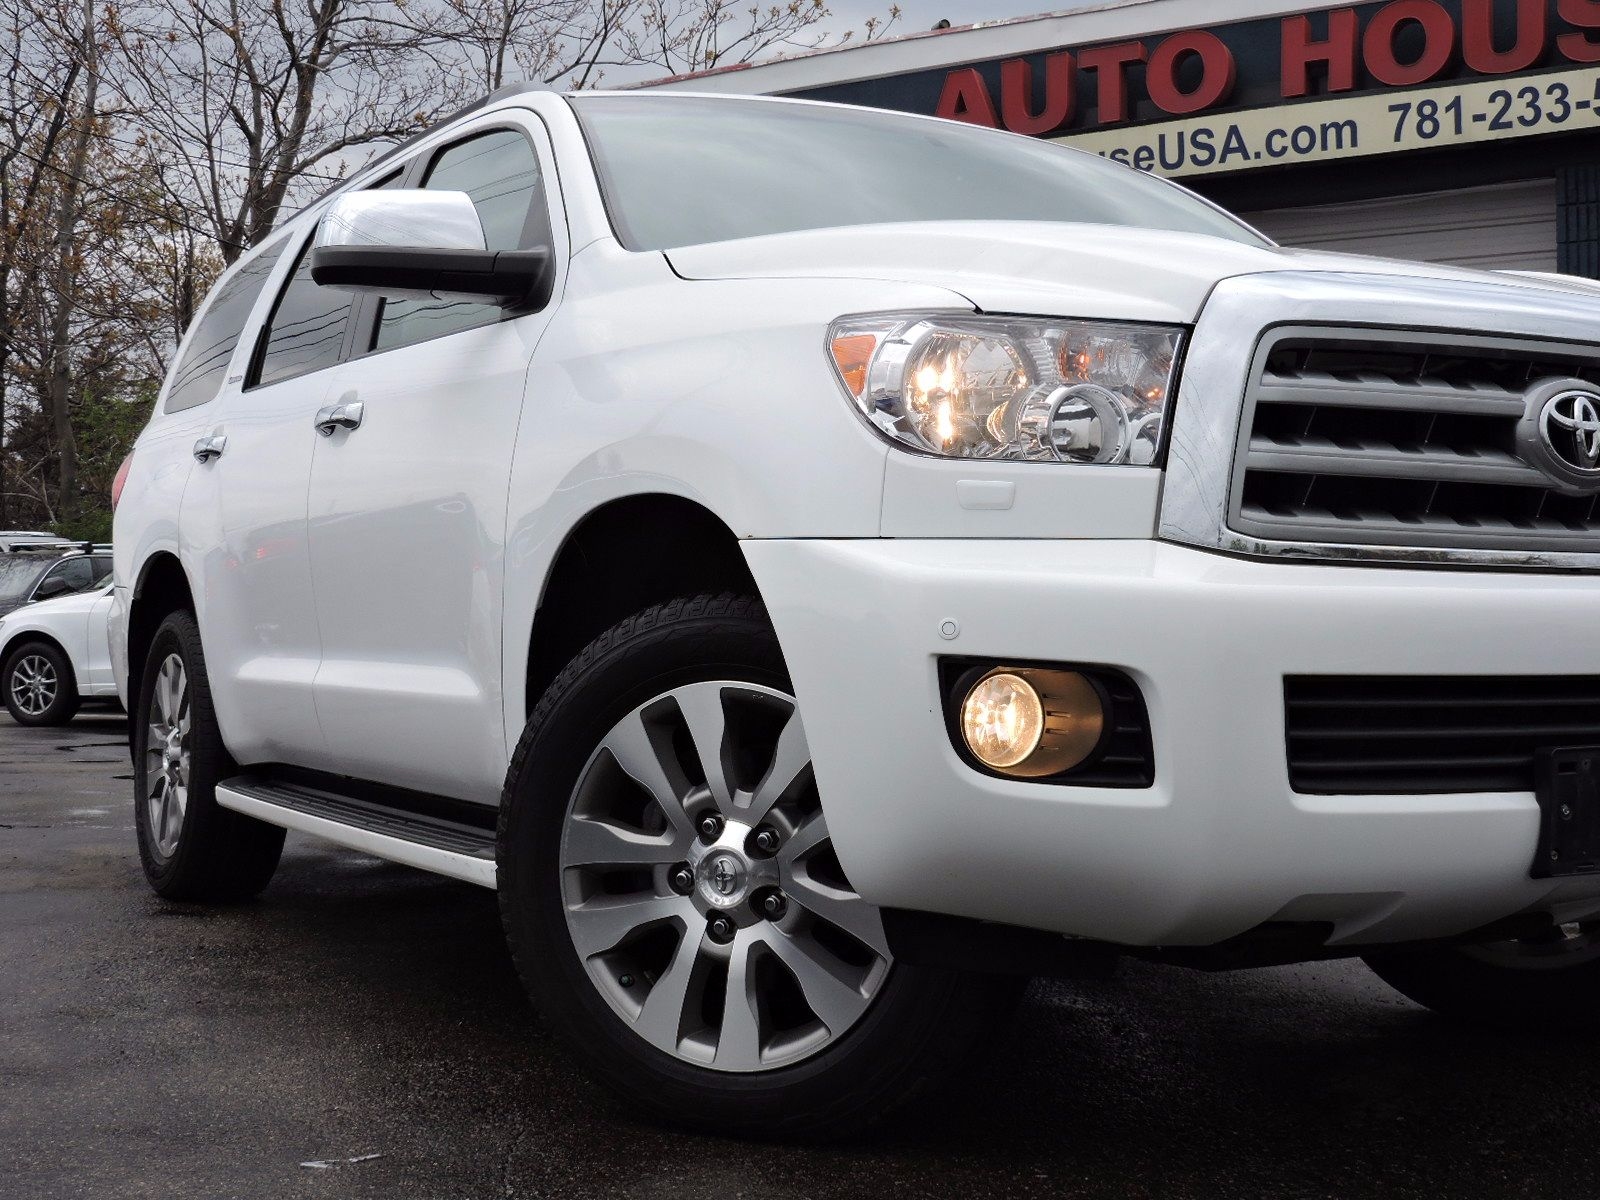 2011 Toyota Sequoia - All Wheel Drive - Limited - Navigation - DVD Video